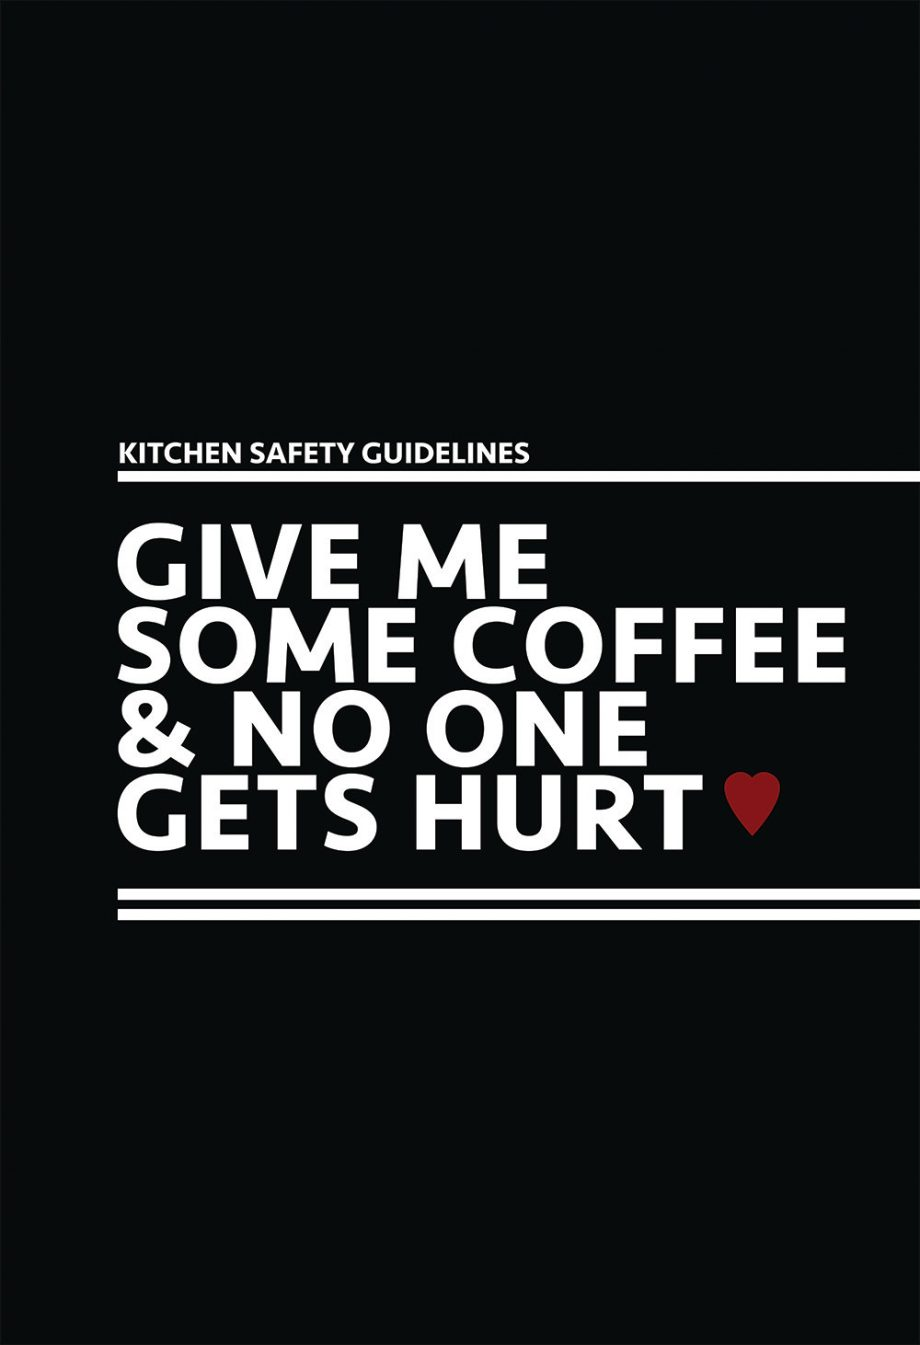 coffee-poster-kitchen-print-original-giclee-large-poster-print-on-satin-or-cotton-canvas-funny-home-kitchen-decor-5817aa3e3.jpg